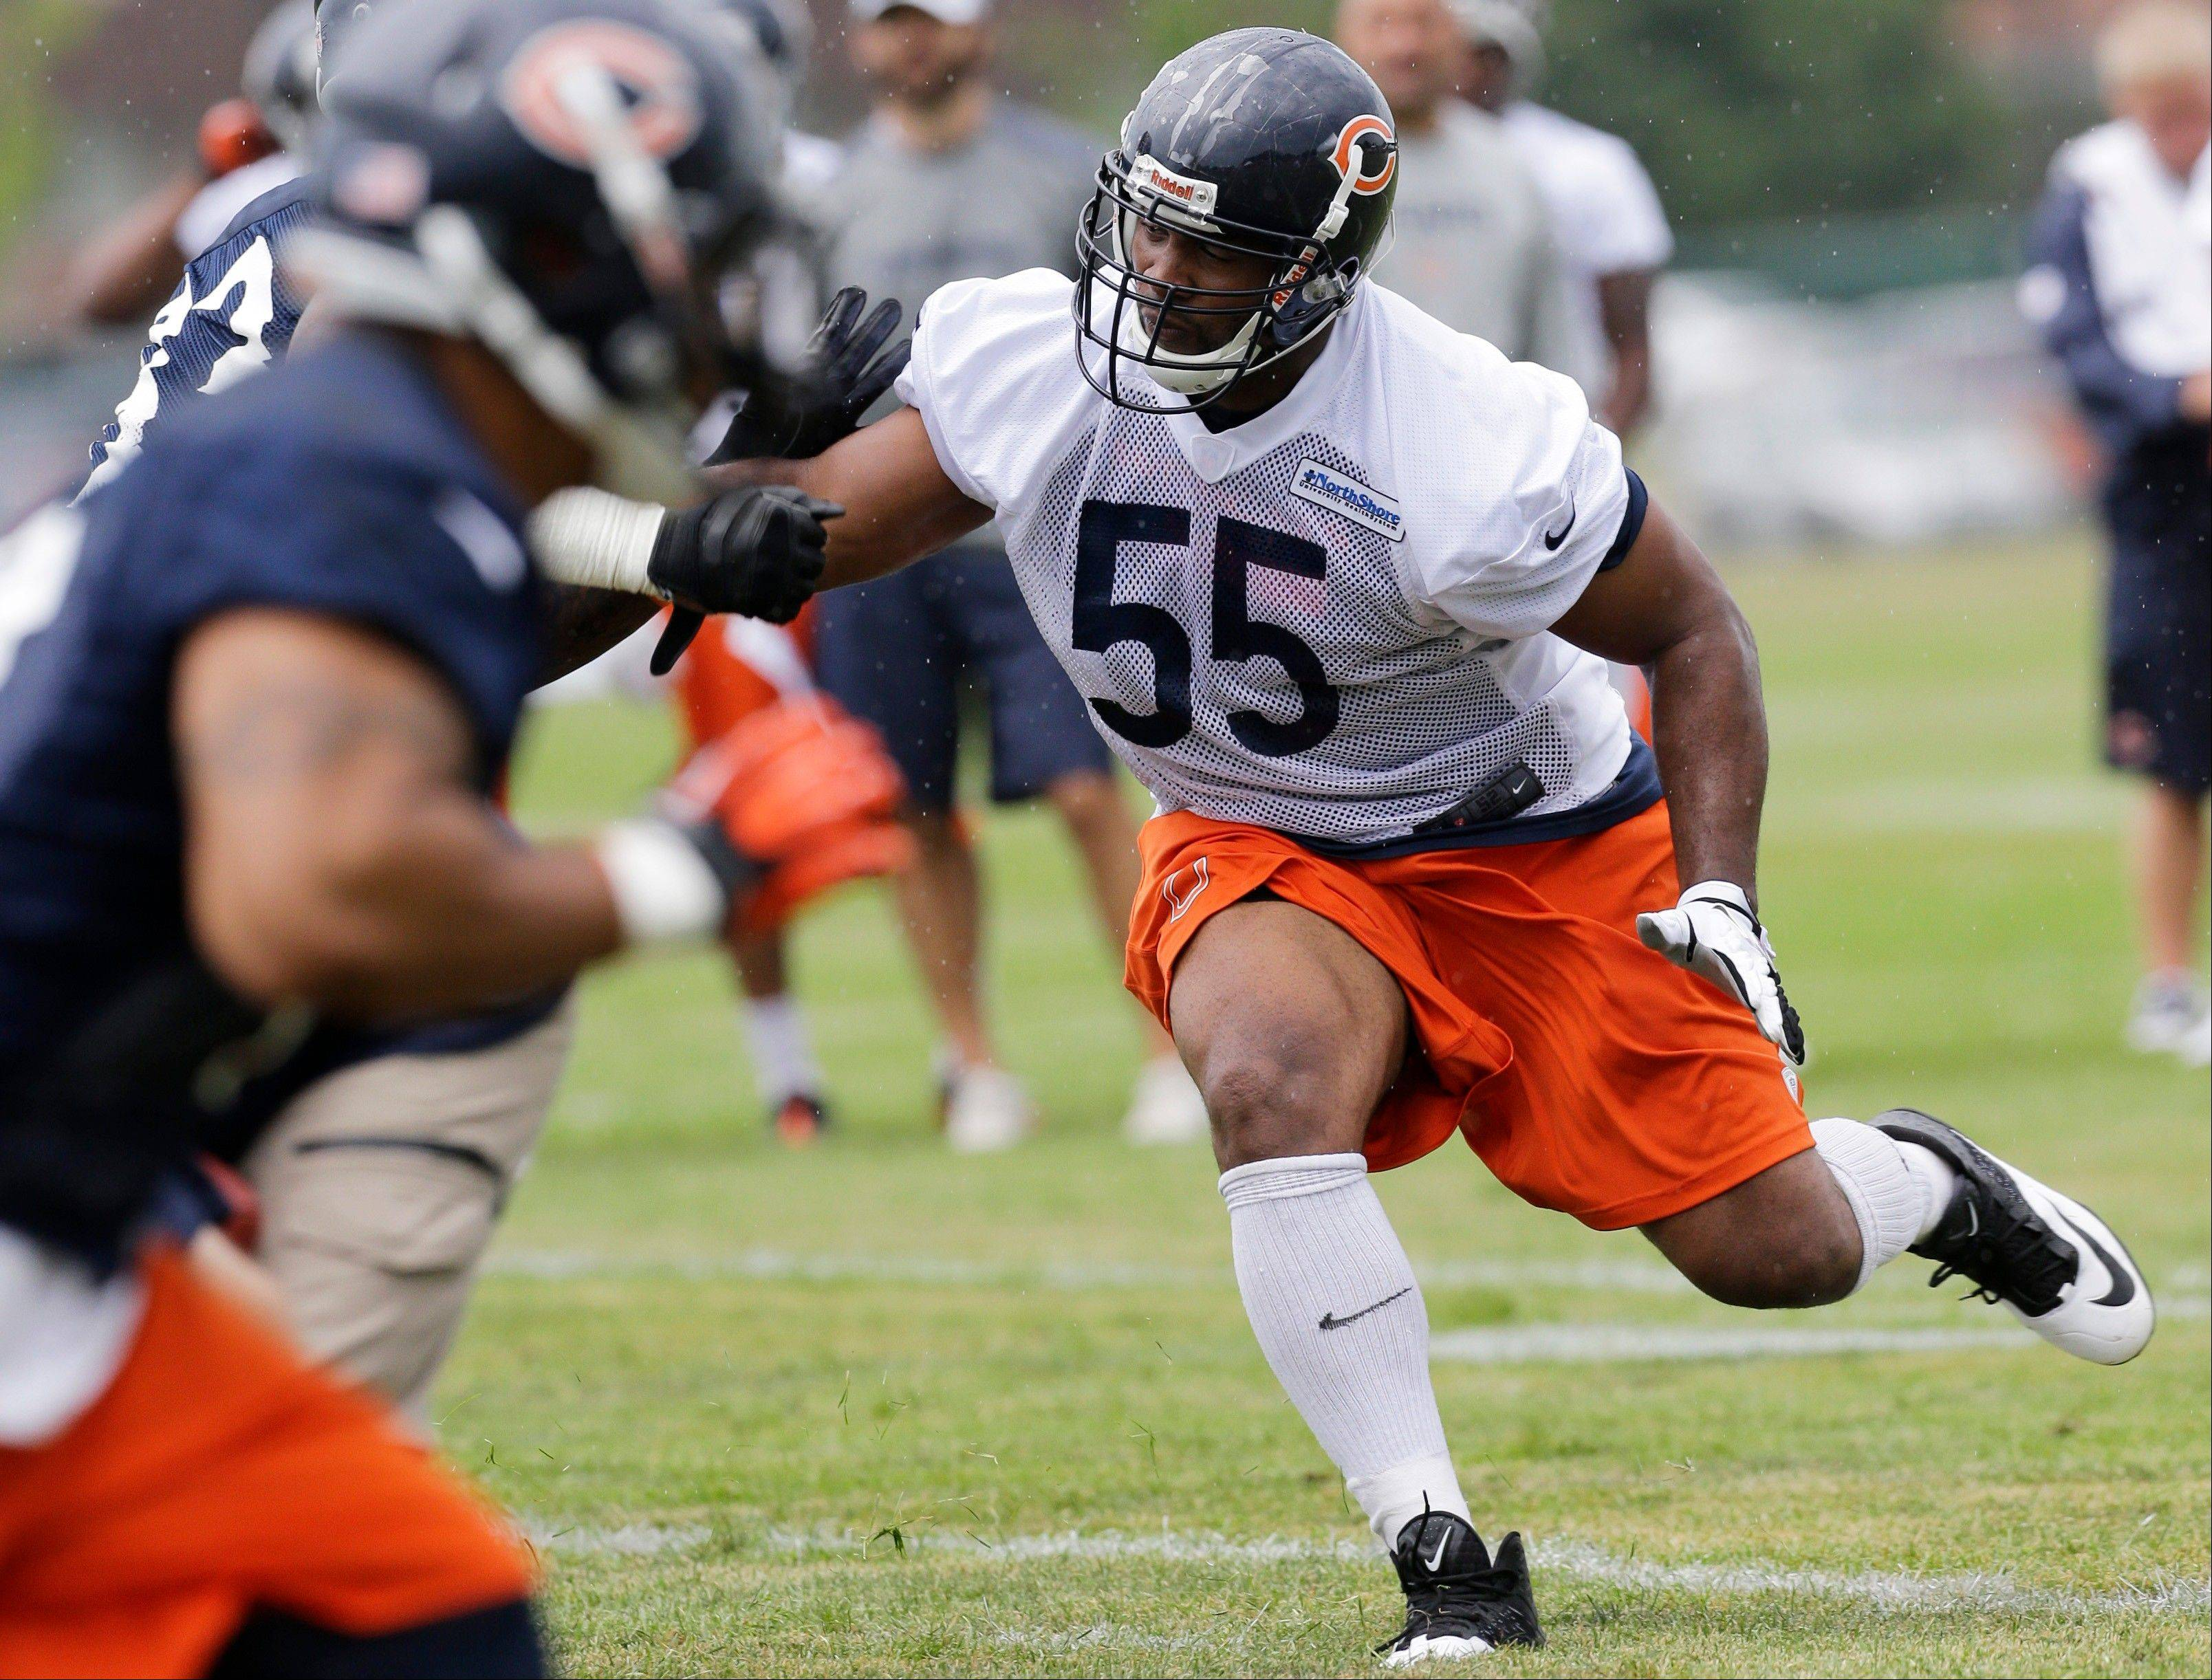 Chicago Bears linebacker Lance Briggs works with teammates at Friday's training camp. Without Brian Urlacher gone, Briggs will now call the defensive signals.